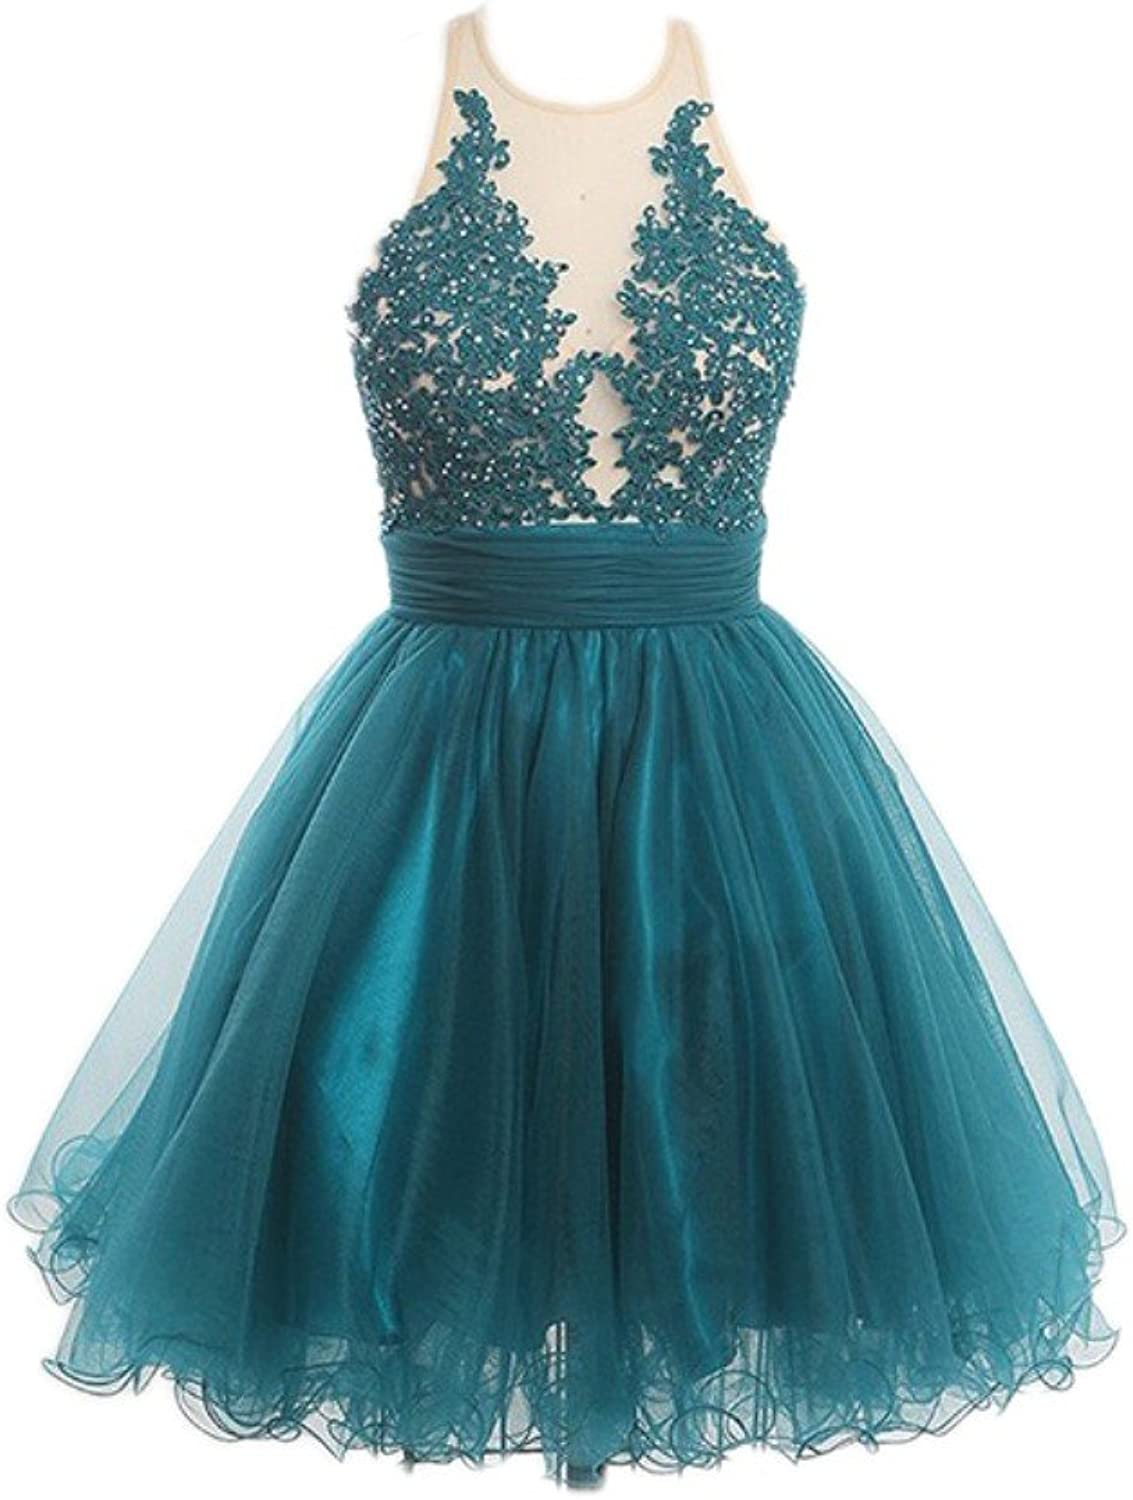 Liaoye Women's A Line Lace Homecoming Dresses Sleeveless Short Prom Party Gown